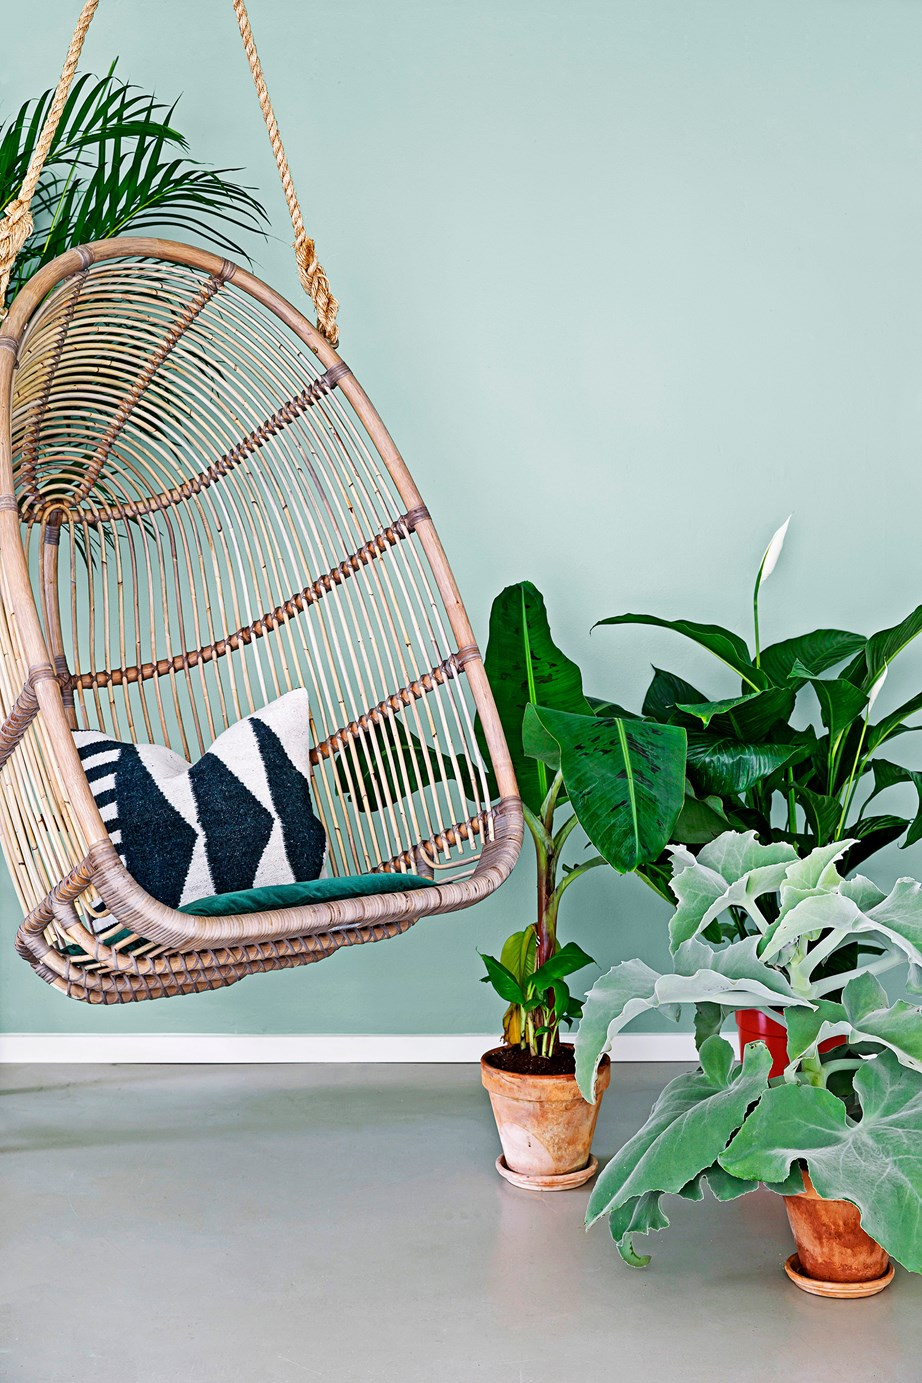 "[Indoor plants](https://www.homestolove.com.au/the-best-indoor-plants-for-australian-homes-2003|target=""_blank"") will not only make your house feel tranquil, they purify the air by clearing out toxins and increasing oxygen."